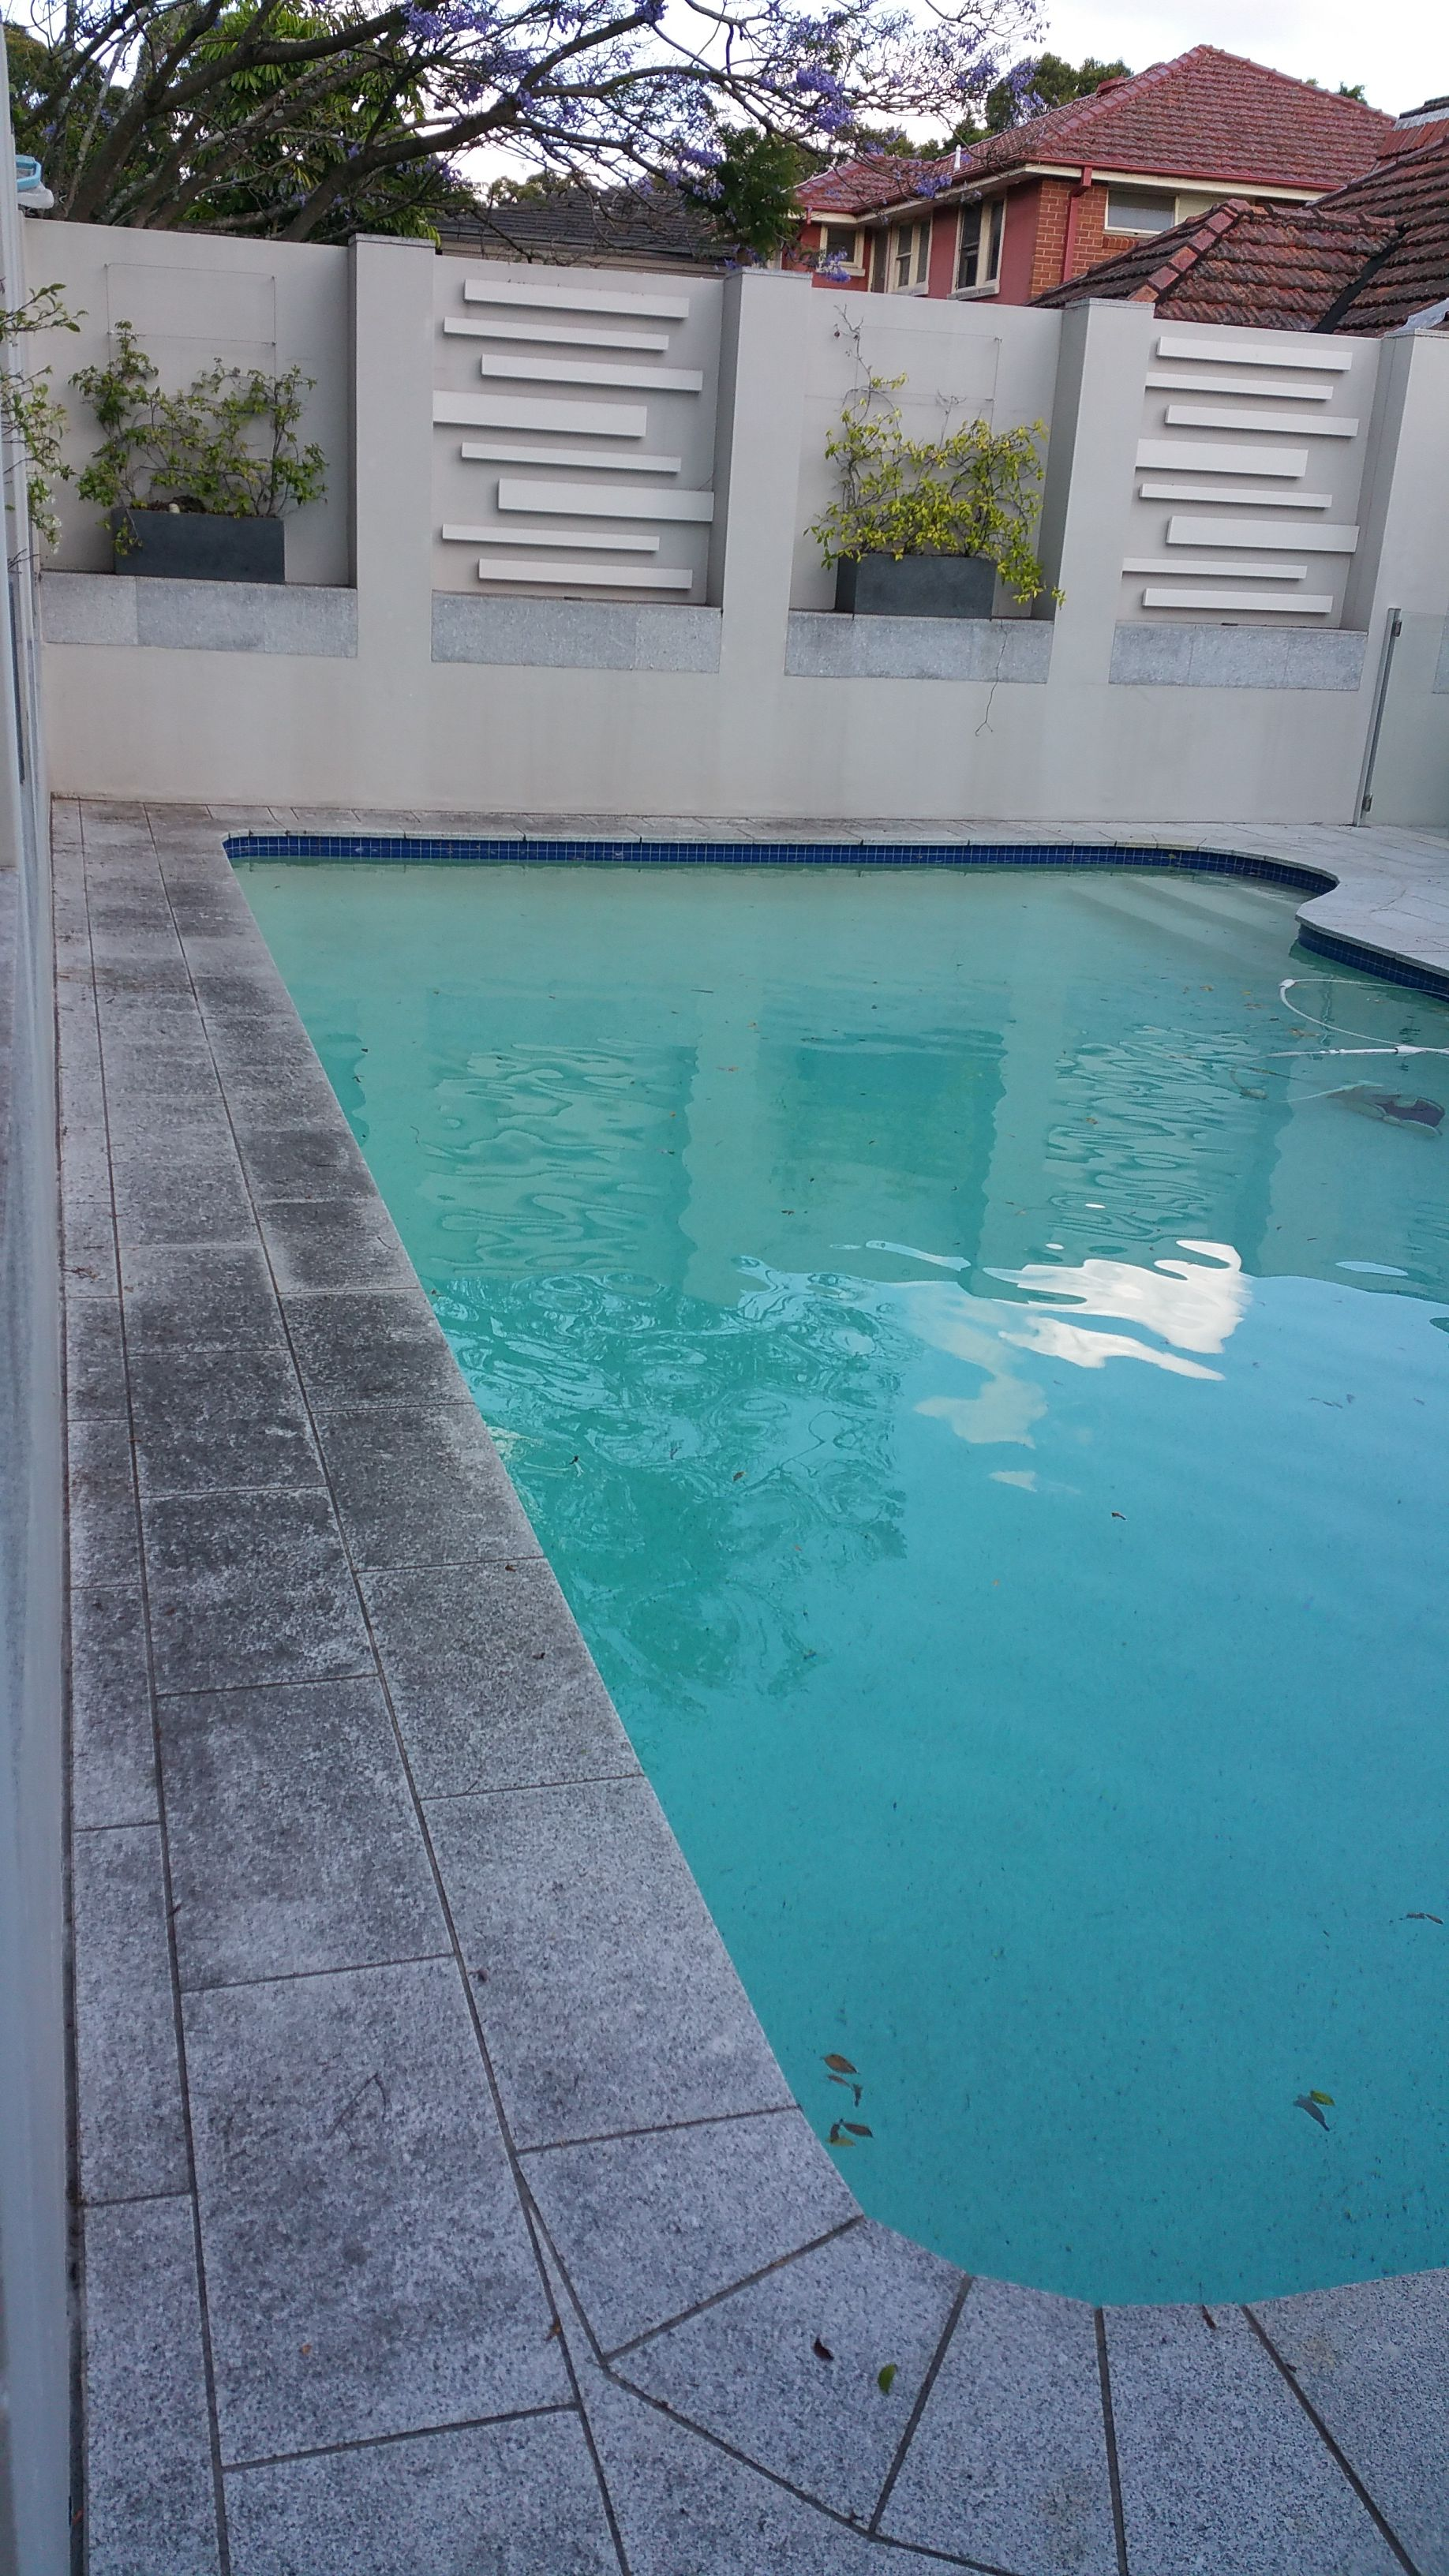 Paver cleaning and sealing Outdoor, Outdoor decor, Paver